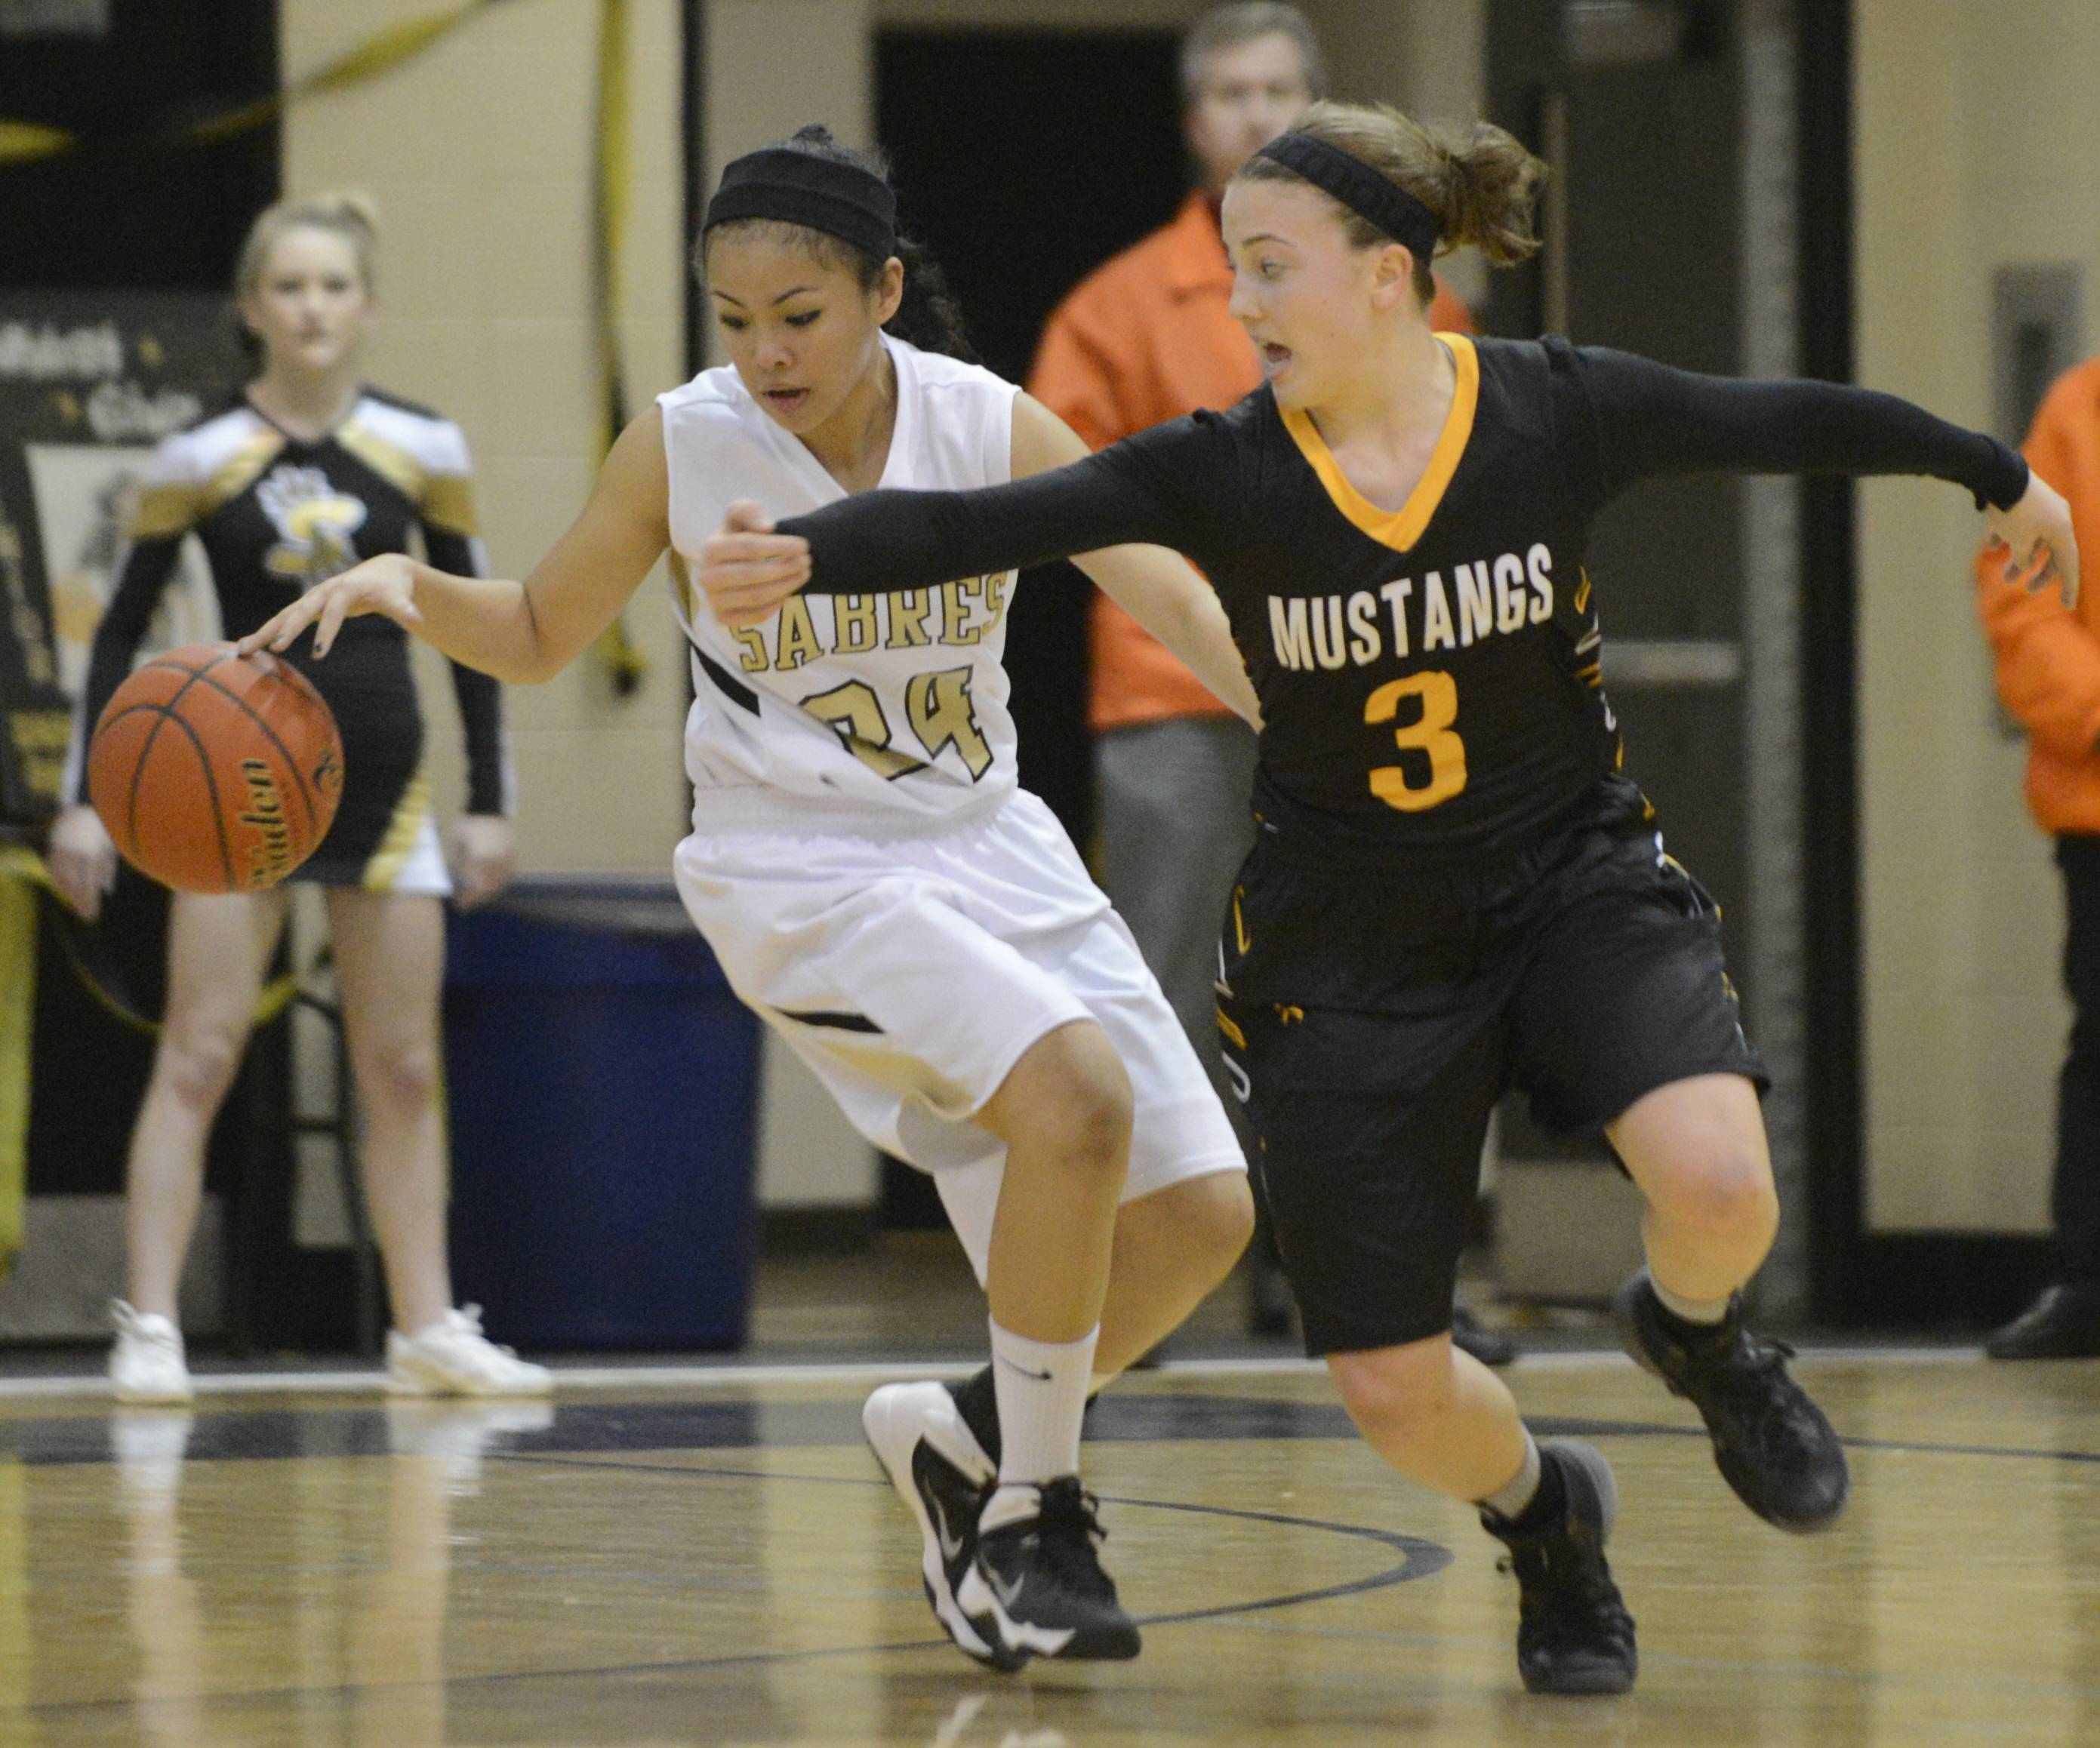 Images from the Metea Valley vs. Streamwood girls basketball game Thursday, February 13, 2014.